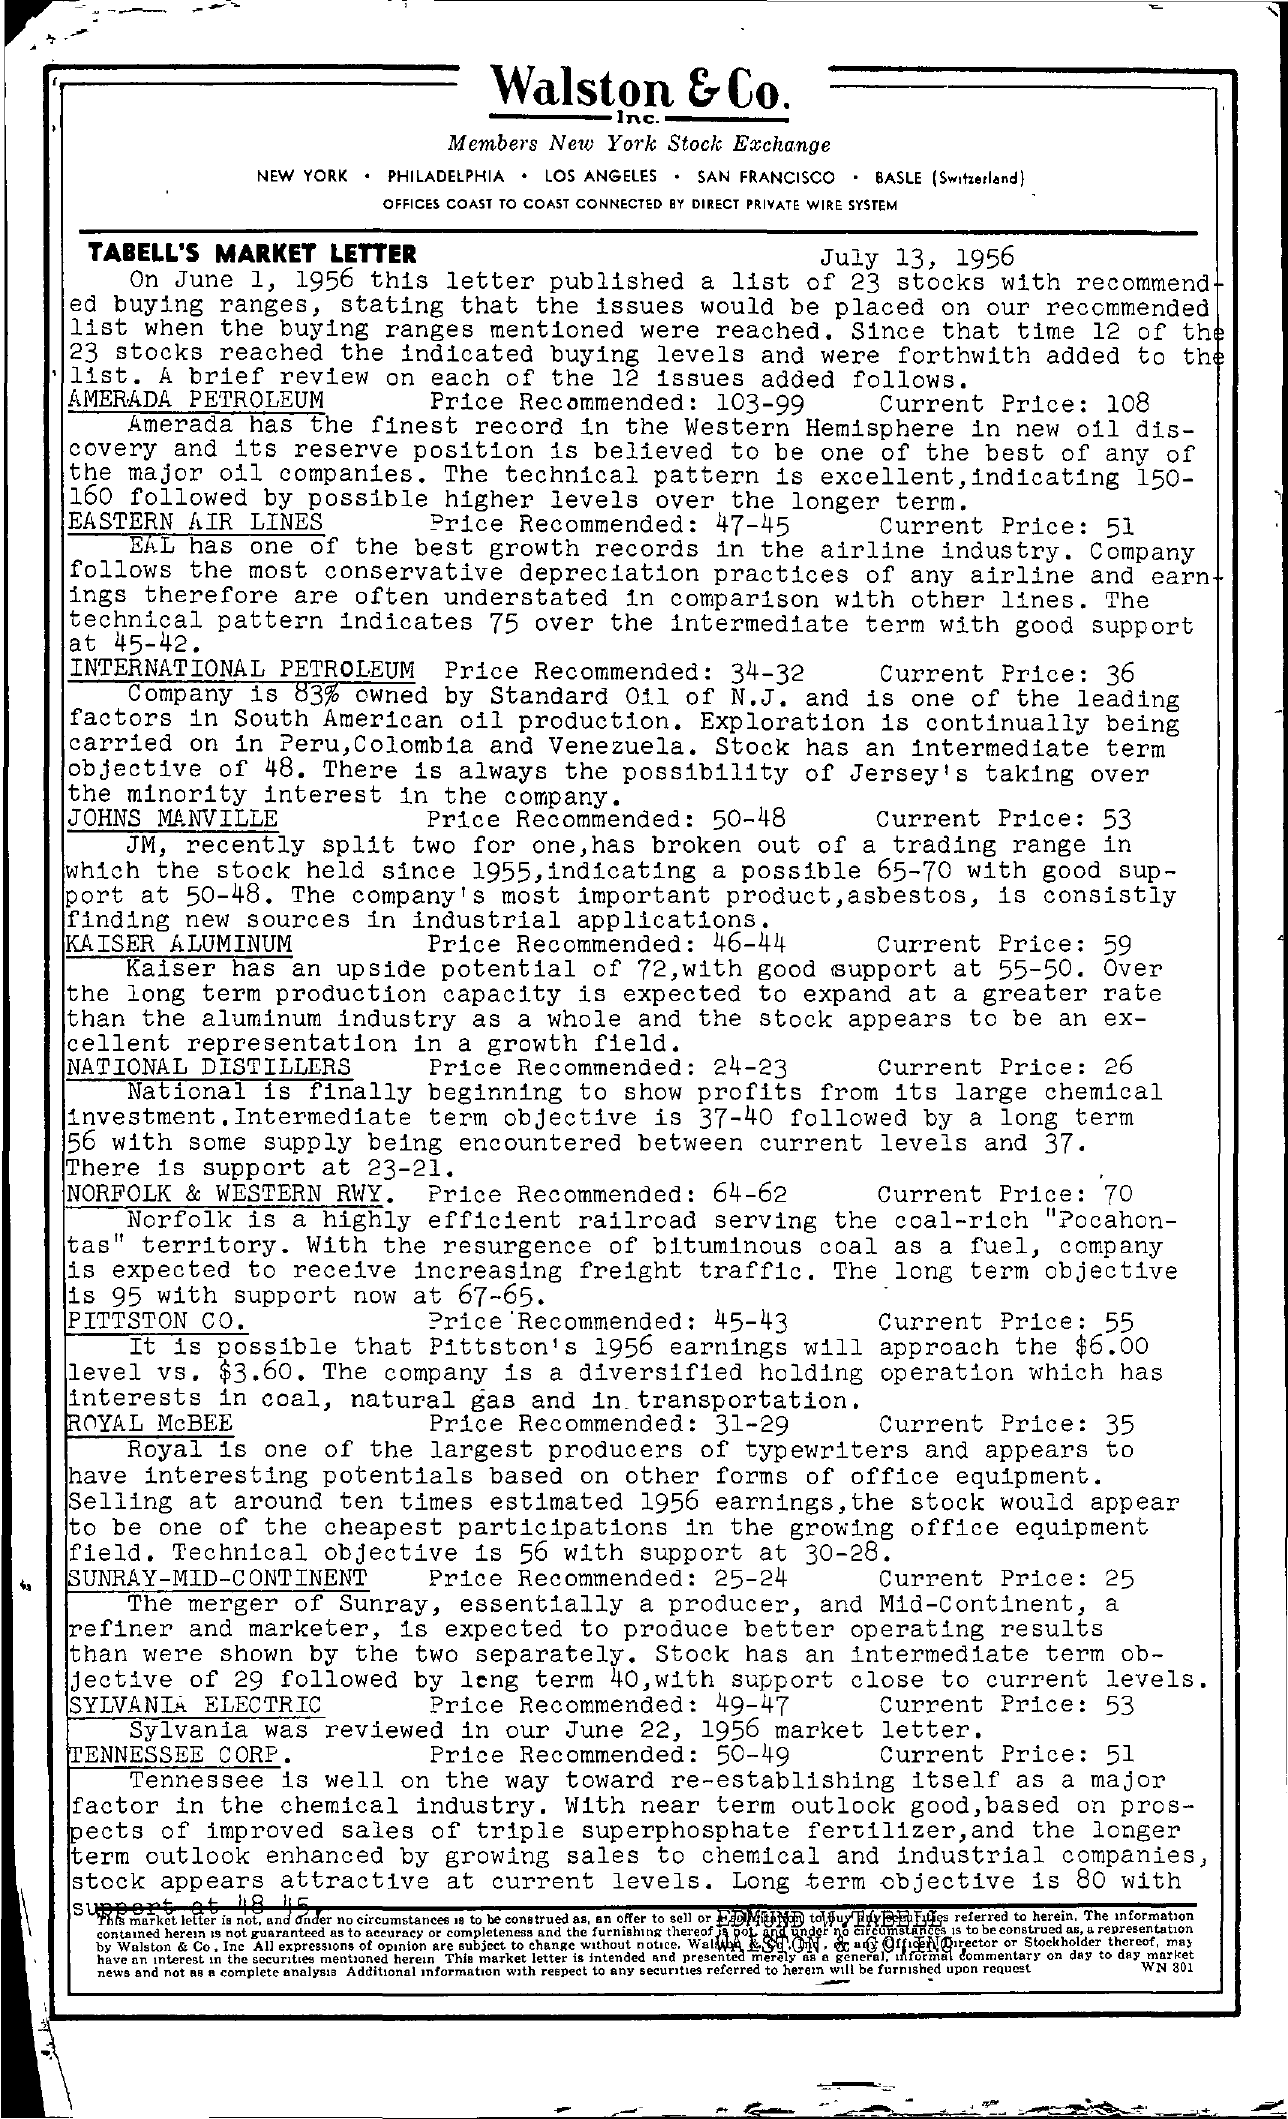 Tabell's Market Letter - July 13, 1956